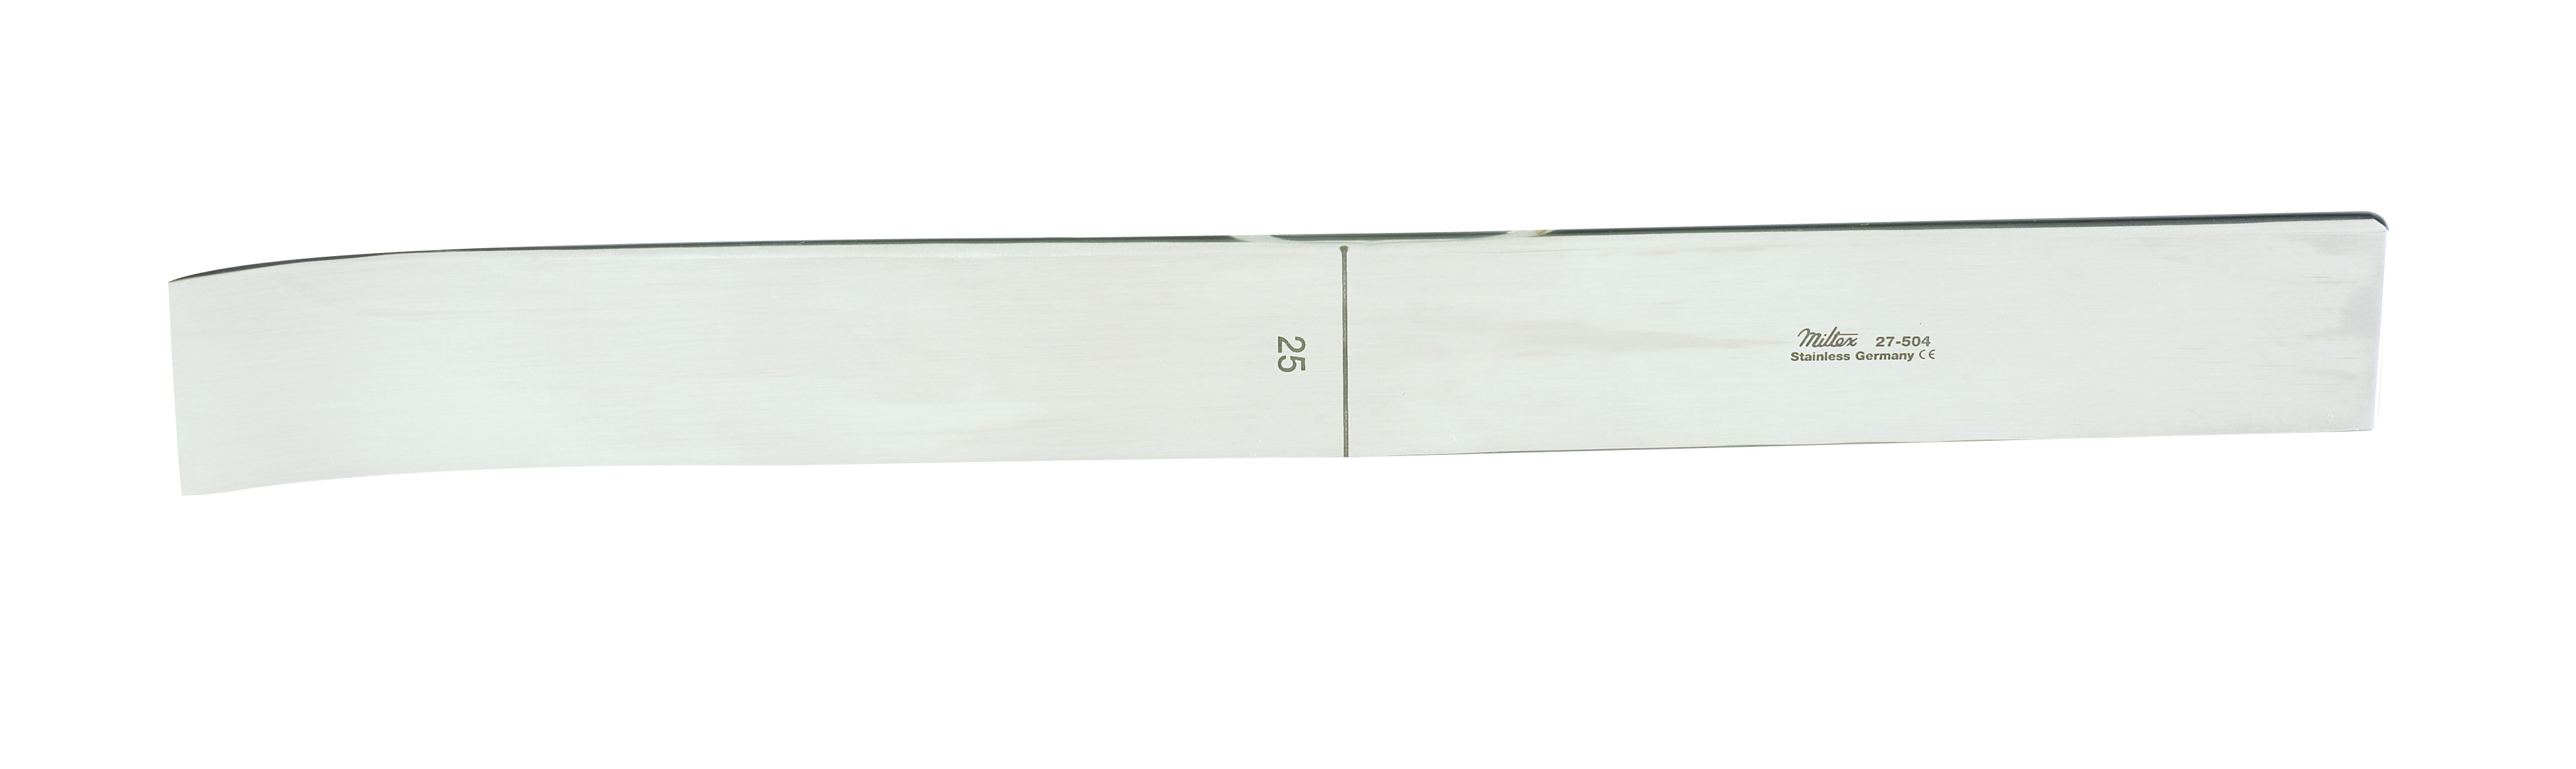 lambotte-osteotome-9-229-cm-curved-25-mm-1-27-504-miltex.jpg